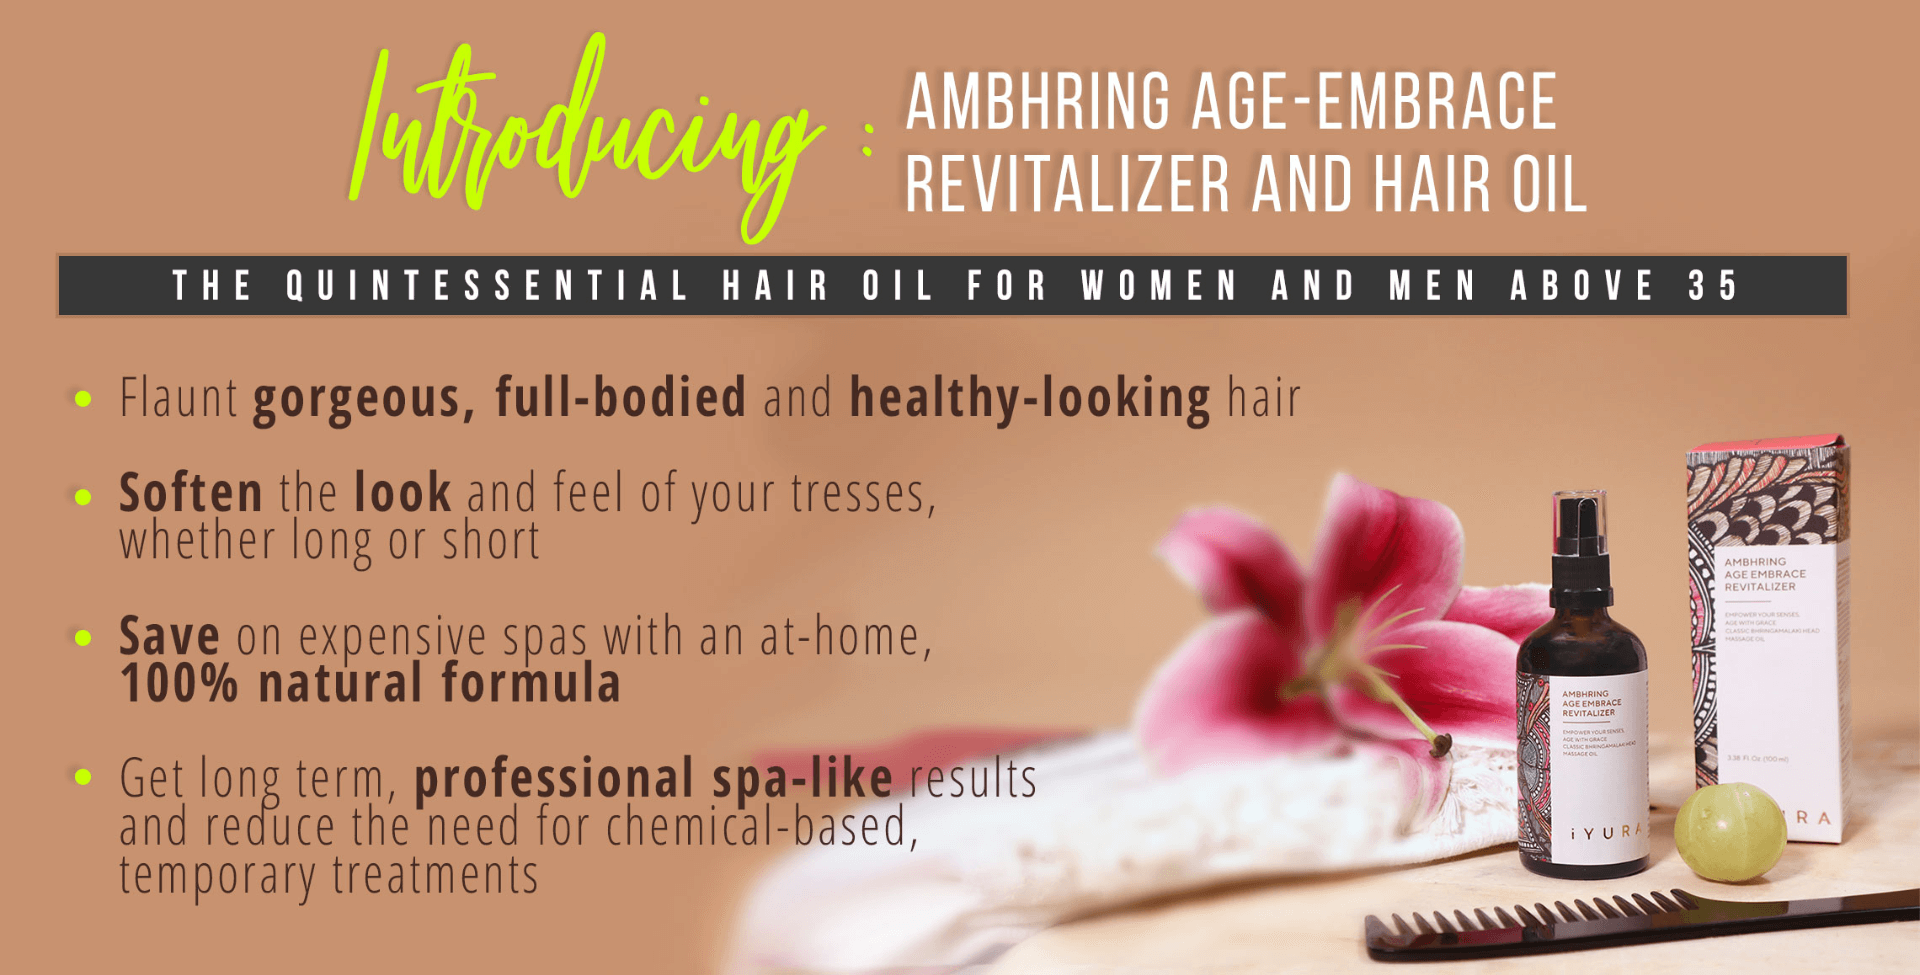 AMBHRING AGE-EMBRACE REVITALIZER AND HAIR OIL: Ayurveda's quintessential hair oil for men and women above 35 - Ambhring gives you gorgeous, full-bodied & healthy-looking hair. Save on expensive spas with this treatment that's better than all luxury spas put together.